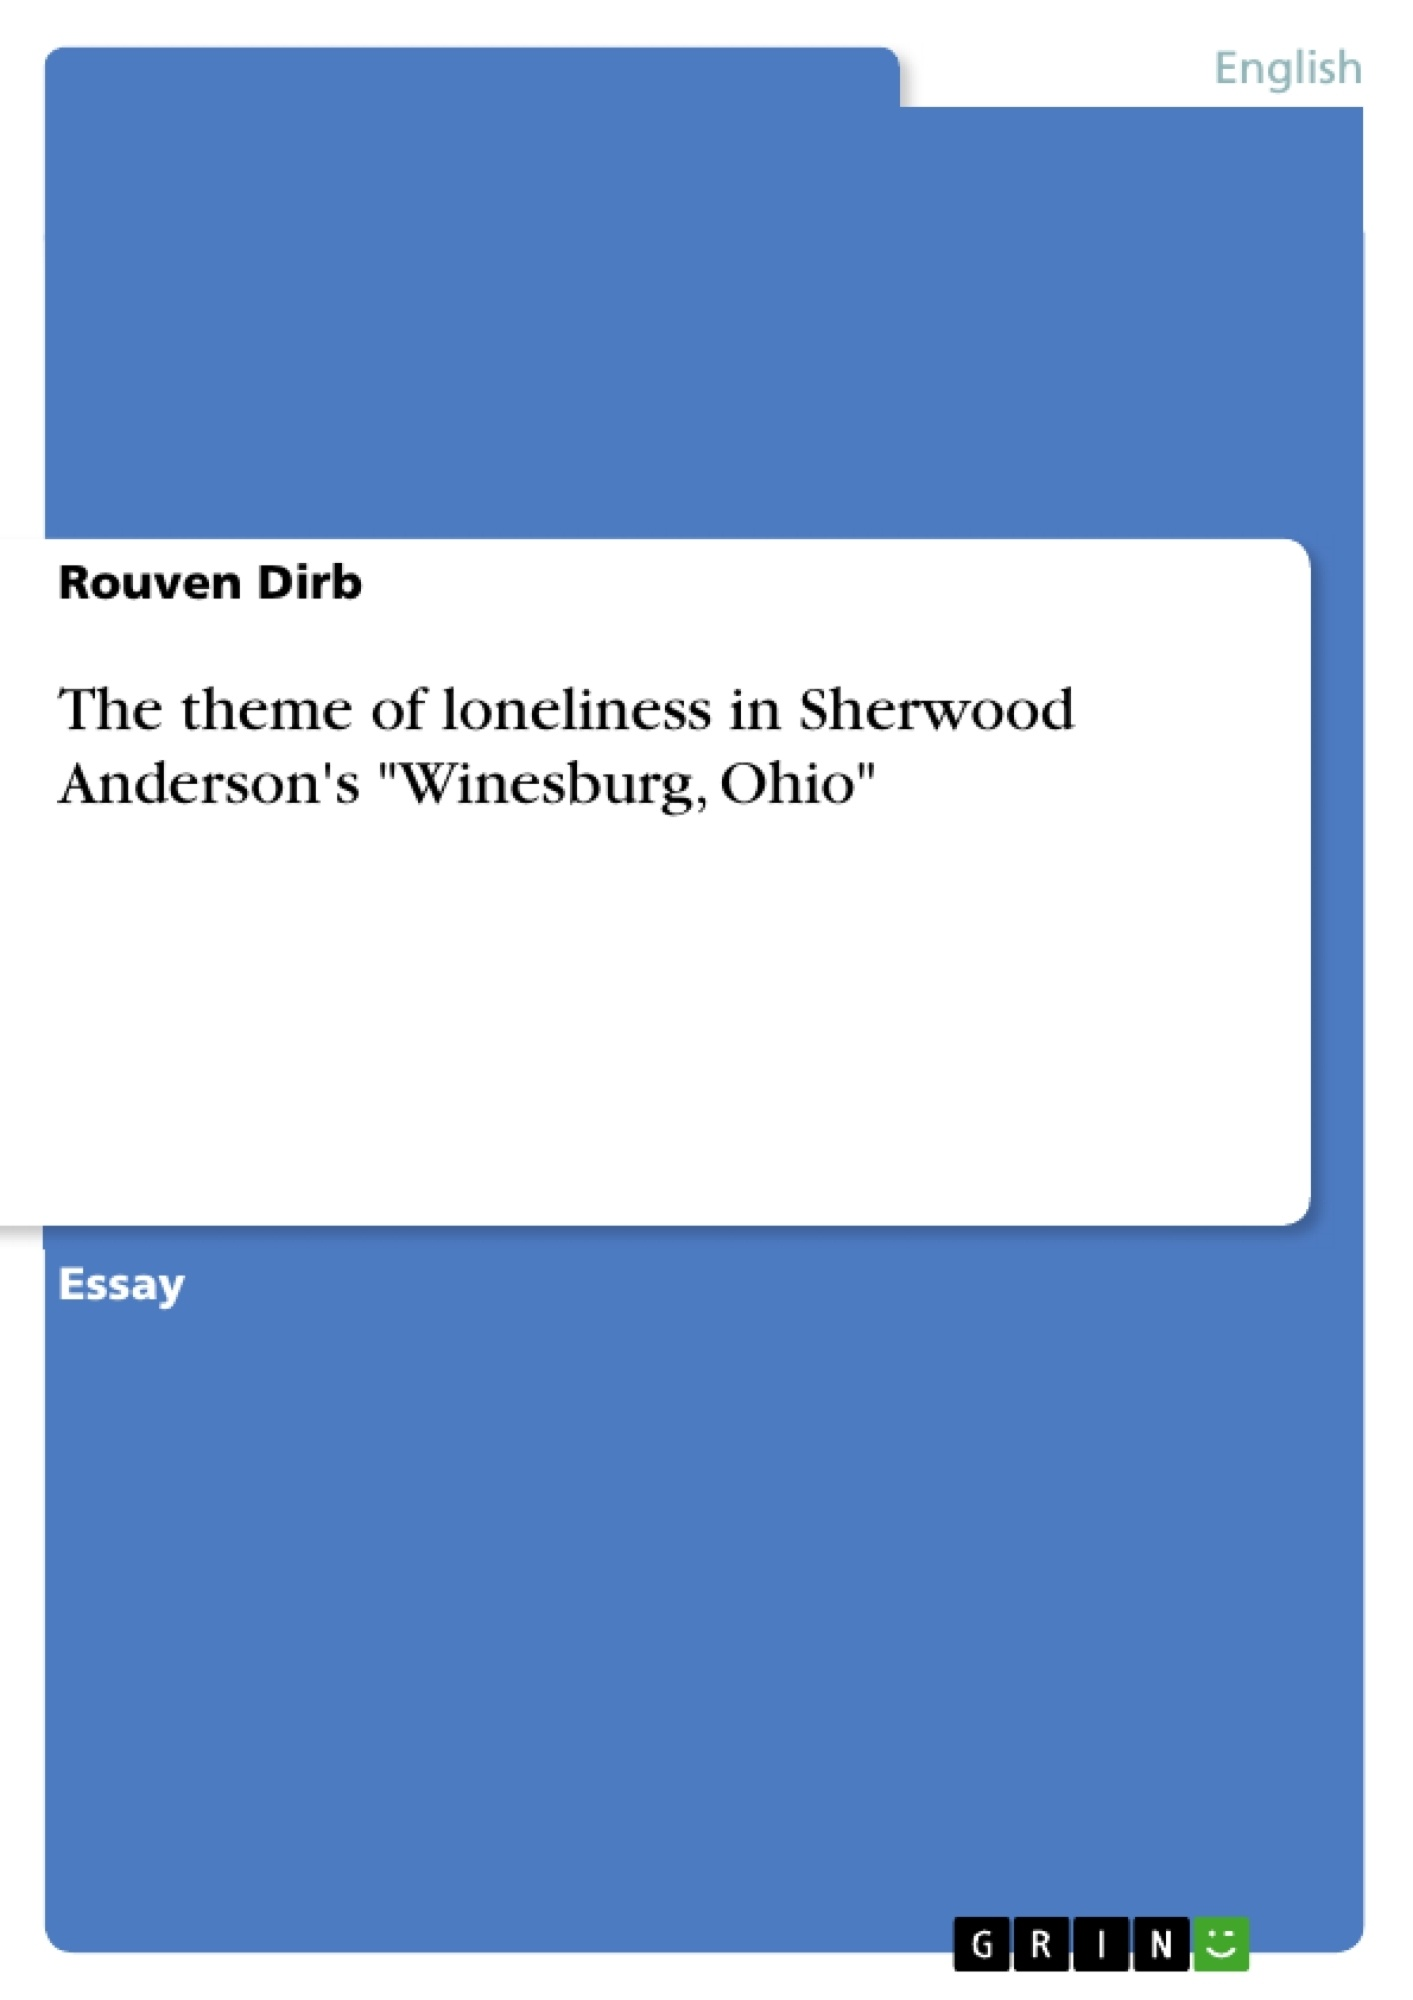 the theme of loneliness in sherwood anderson s winesburg ohio the theme of loneliness in sherwood anderson s winesburg ohio publish your master s thesis bachelor s thesis essay or term paper